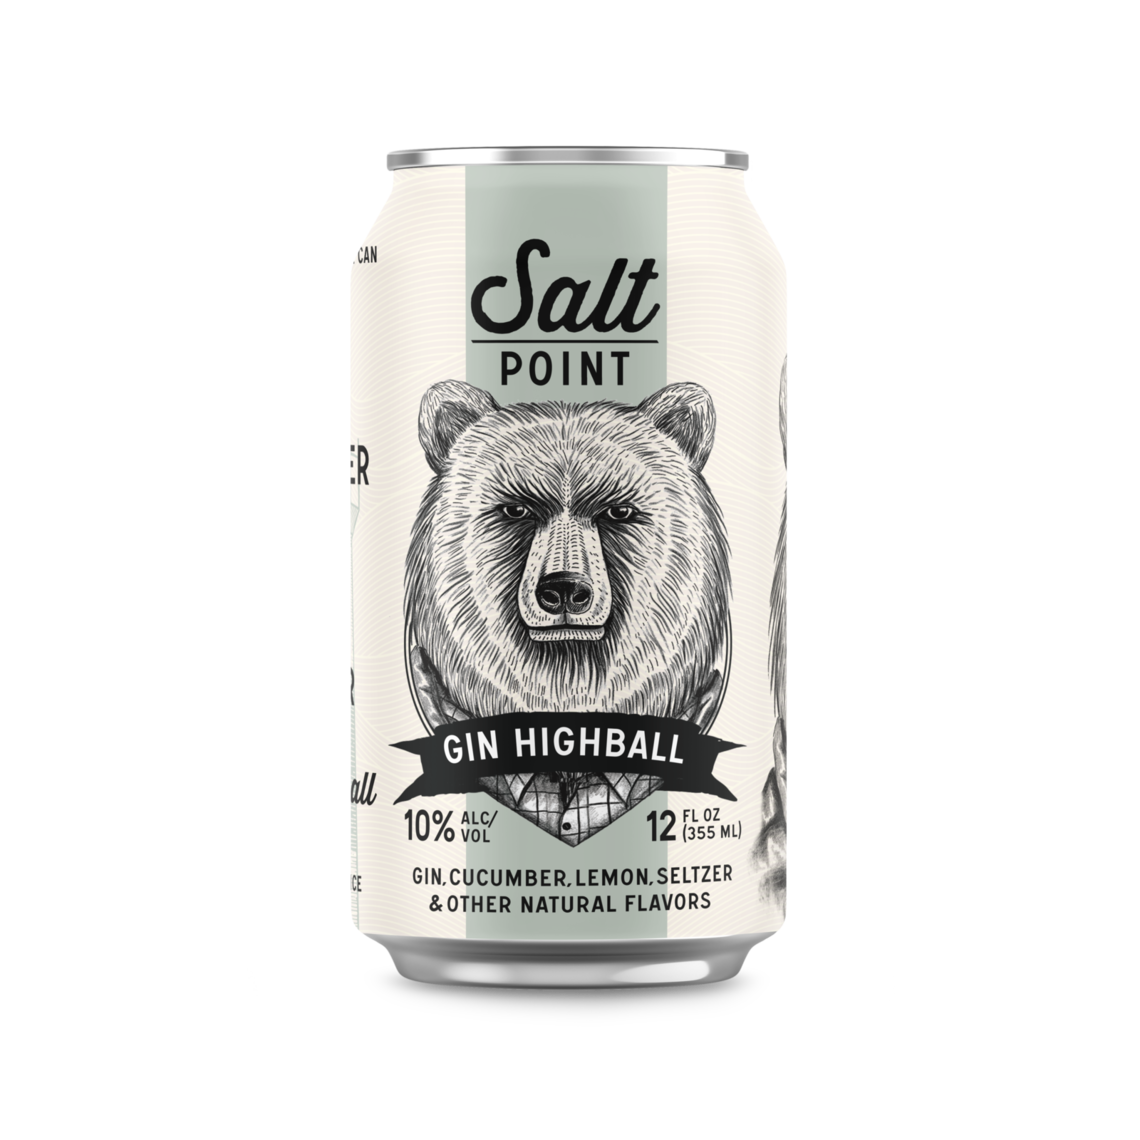 sp ginhighball front can 010521